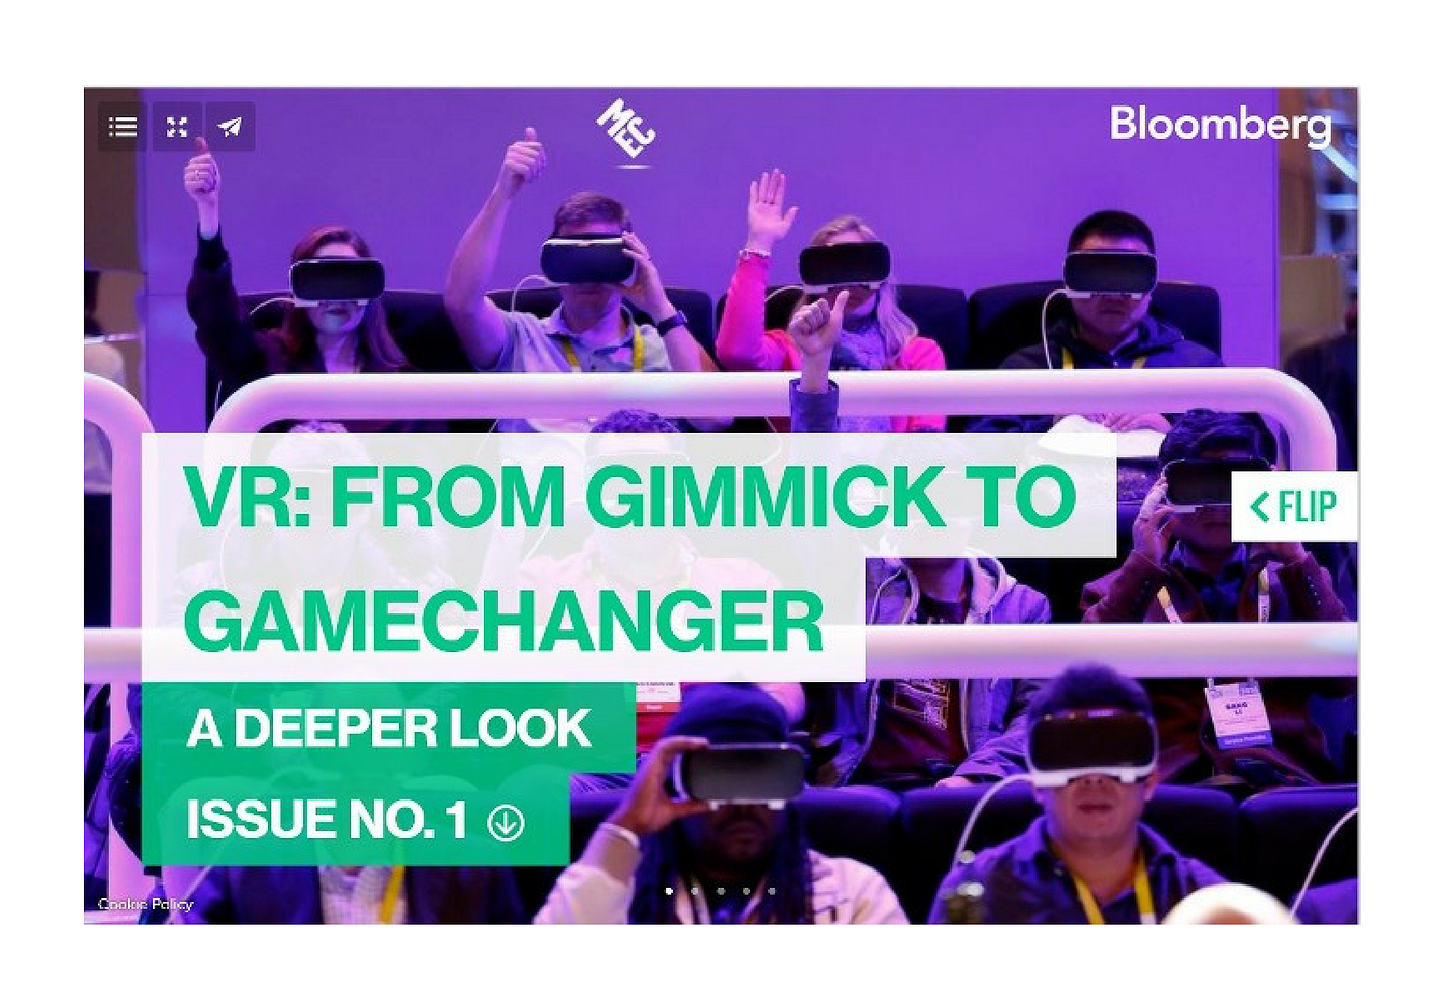 VR: From Gimmick to Gamechanger